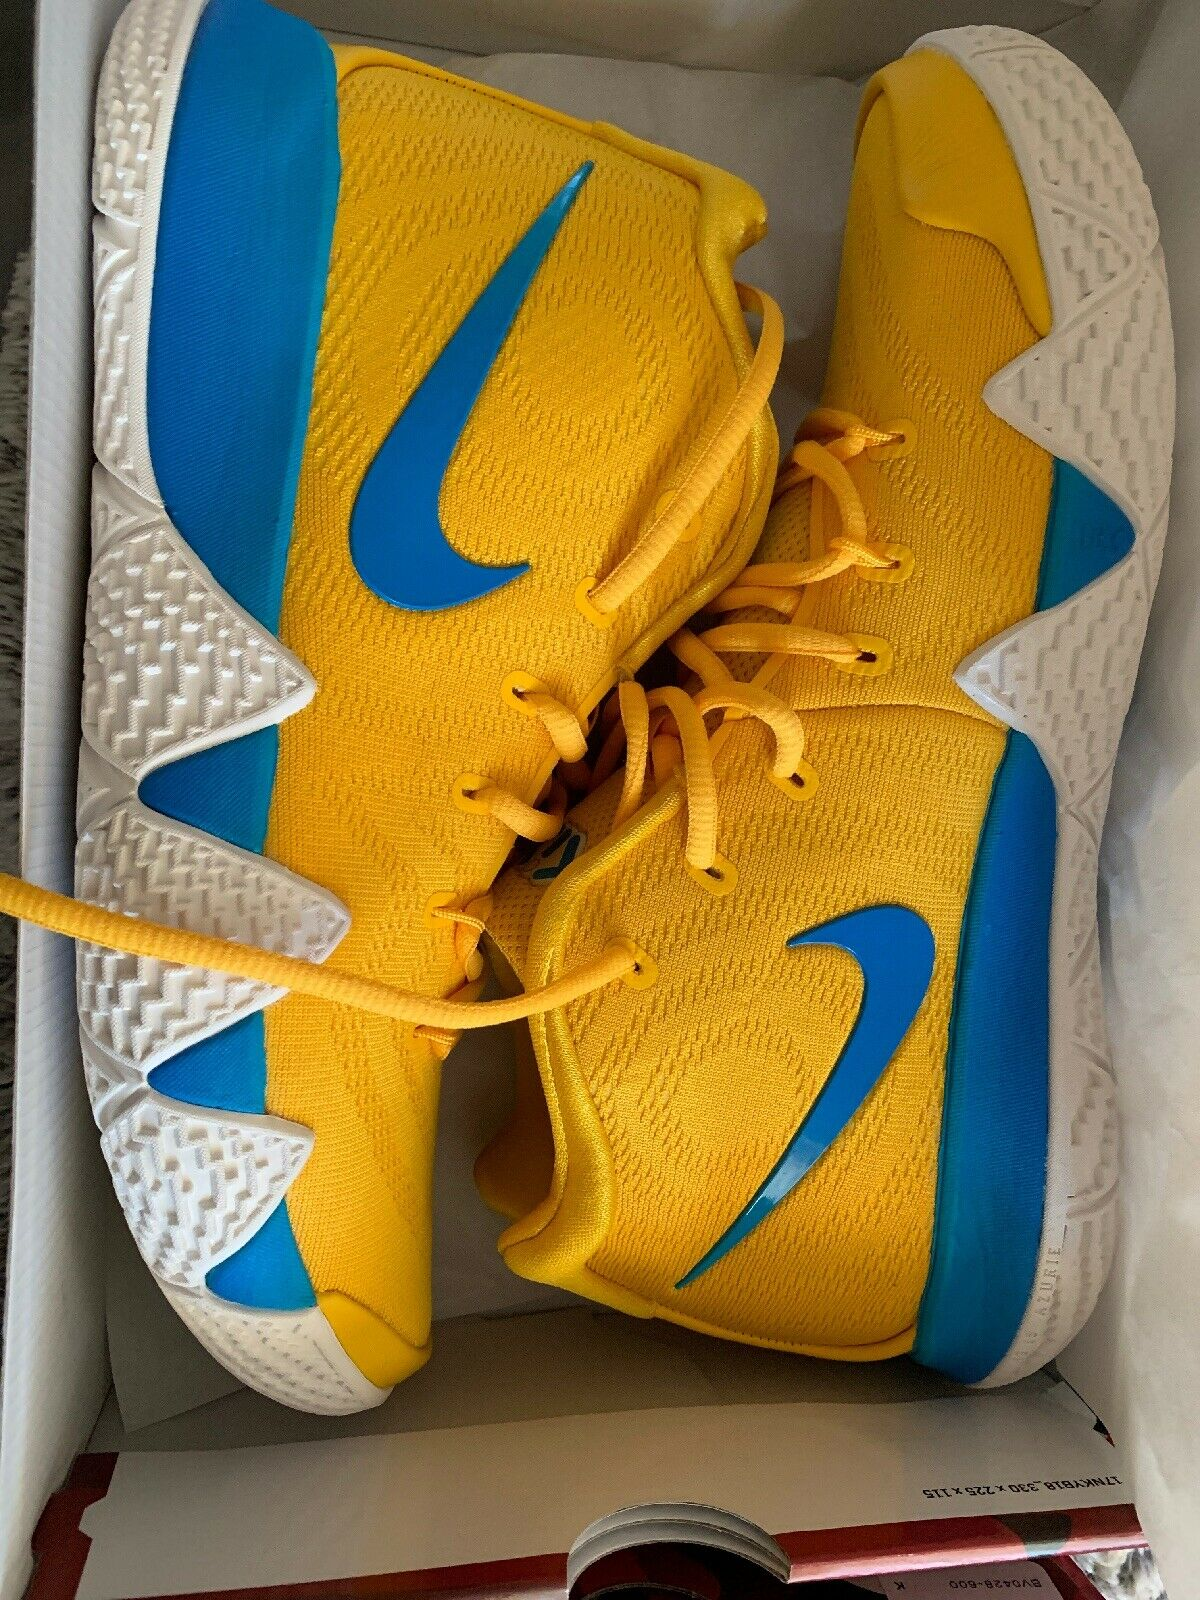 NIKE KYRIE 4 KIX CEREAL PACK yellow MULTI-COLOR SZ 8.5 [BV0425-700]